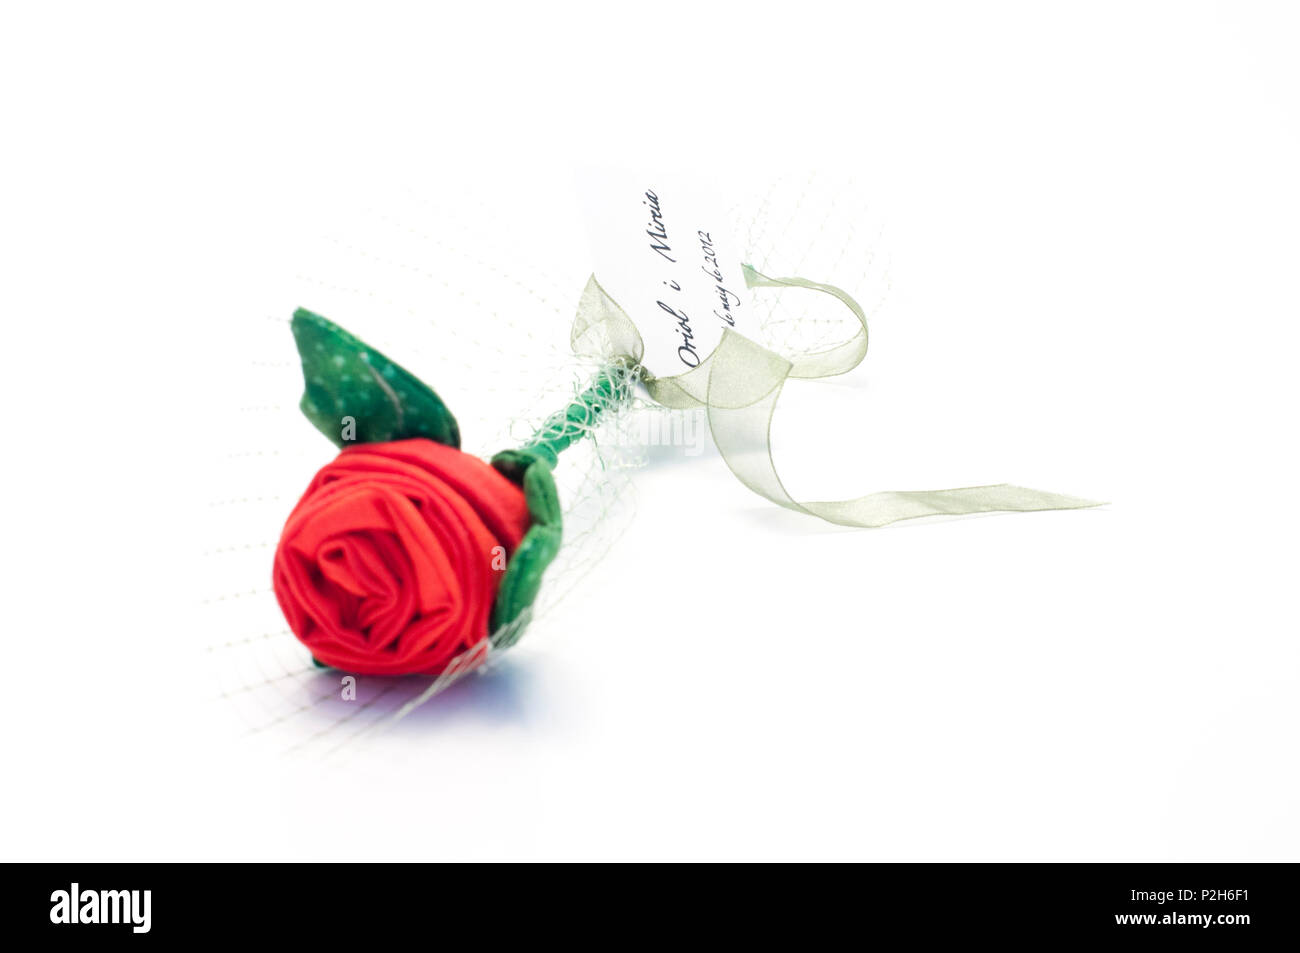 Regal Rosa Rosa Regal De Boda Pink Roses Set Made Of Clothes Stock Photo